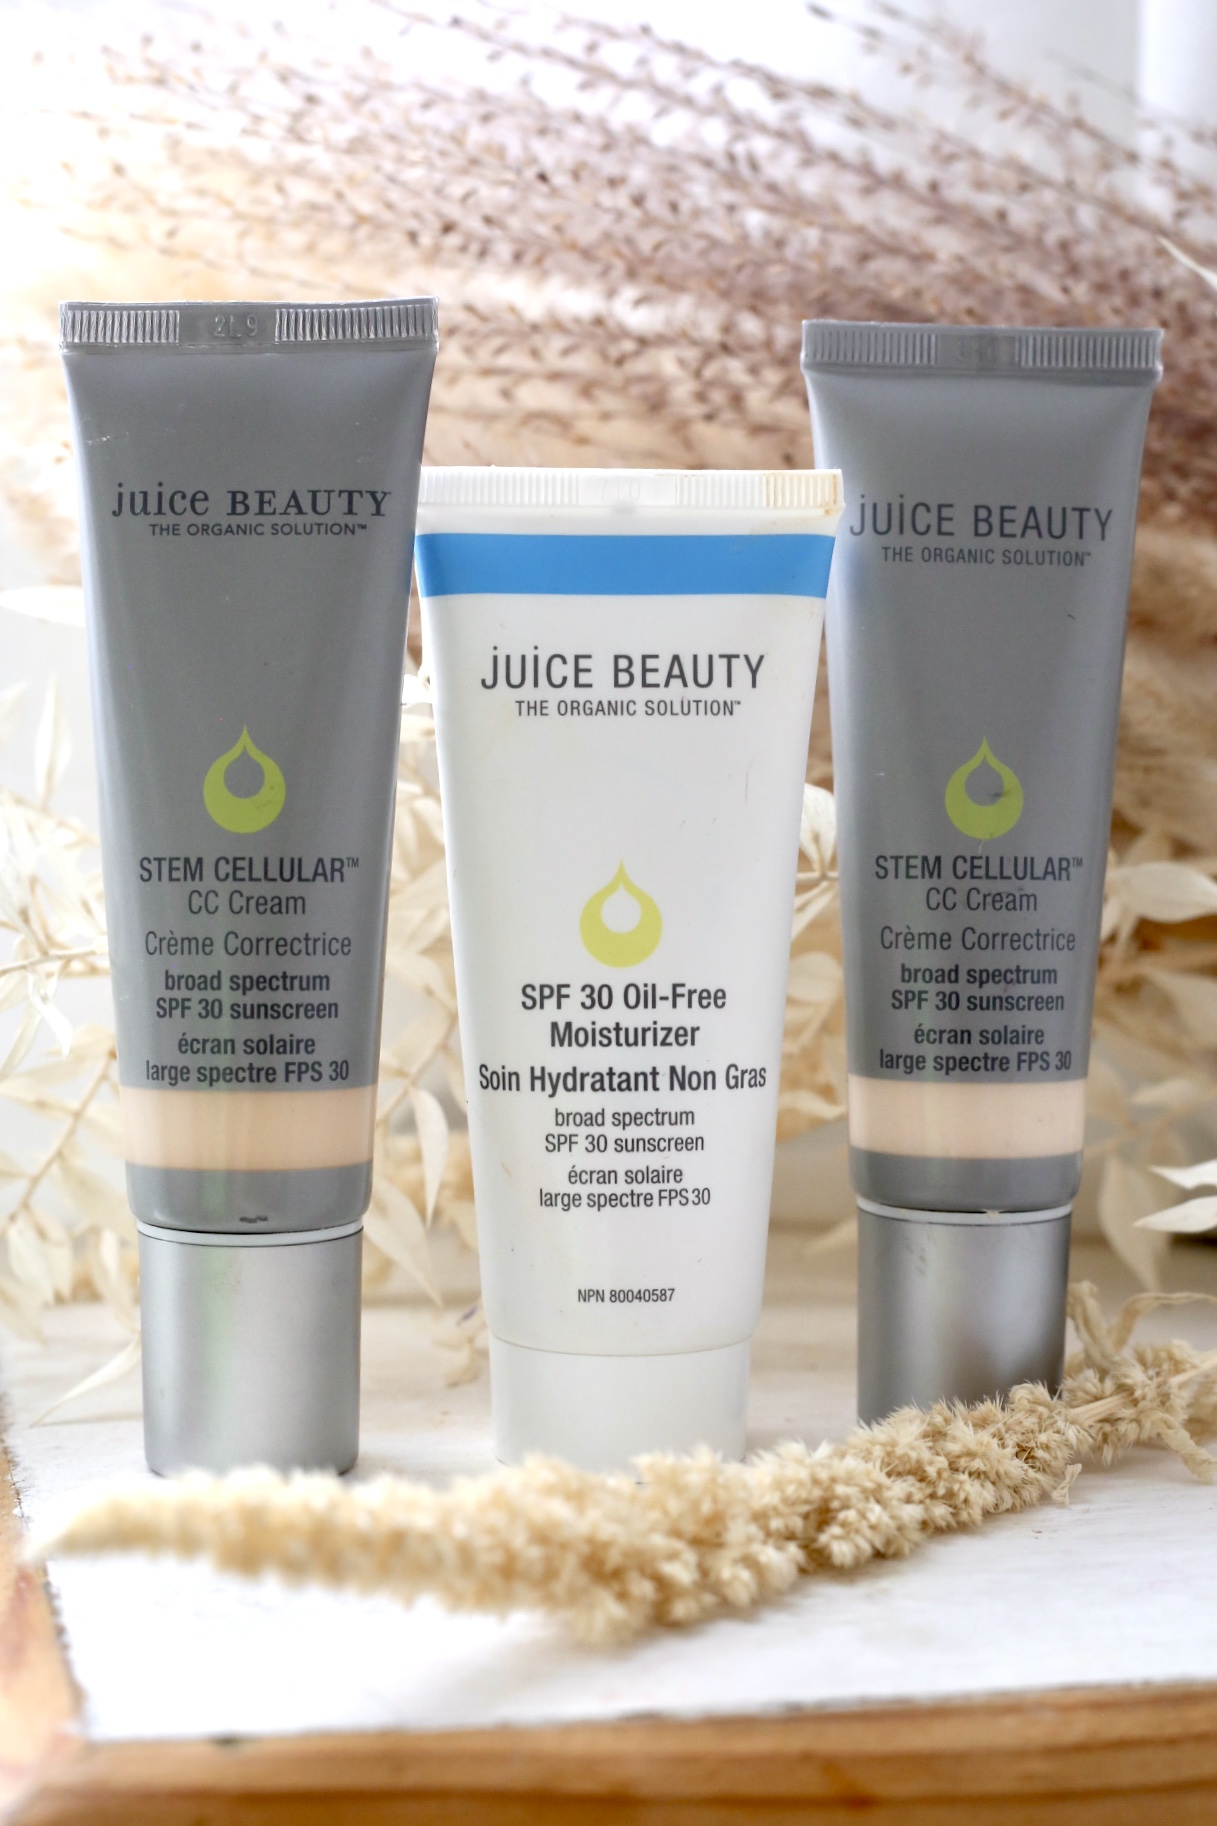 Juice beauty sunscreen review